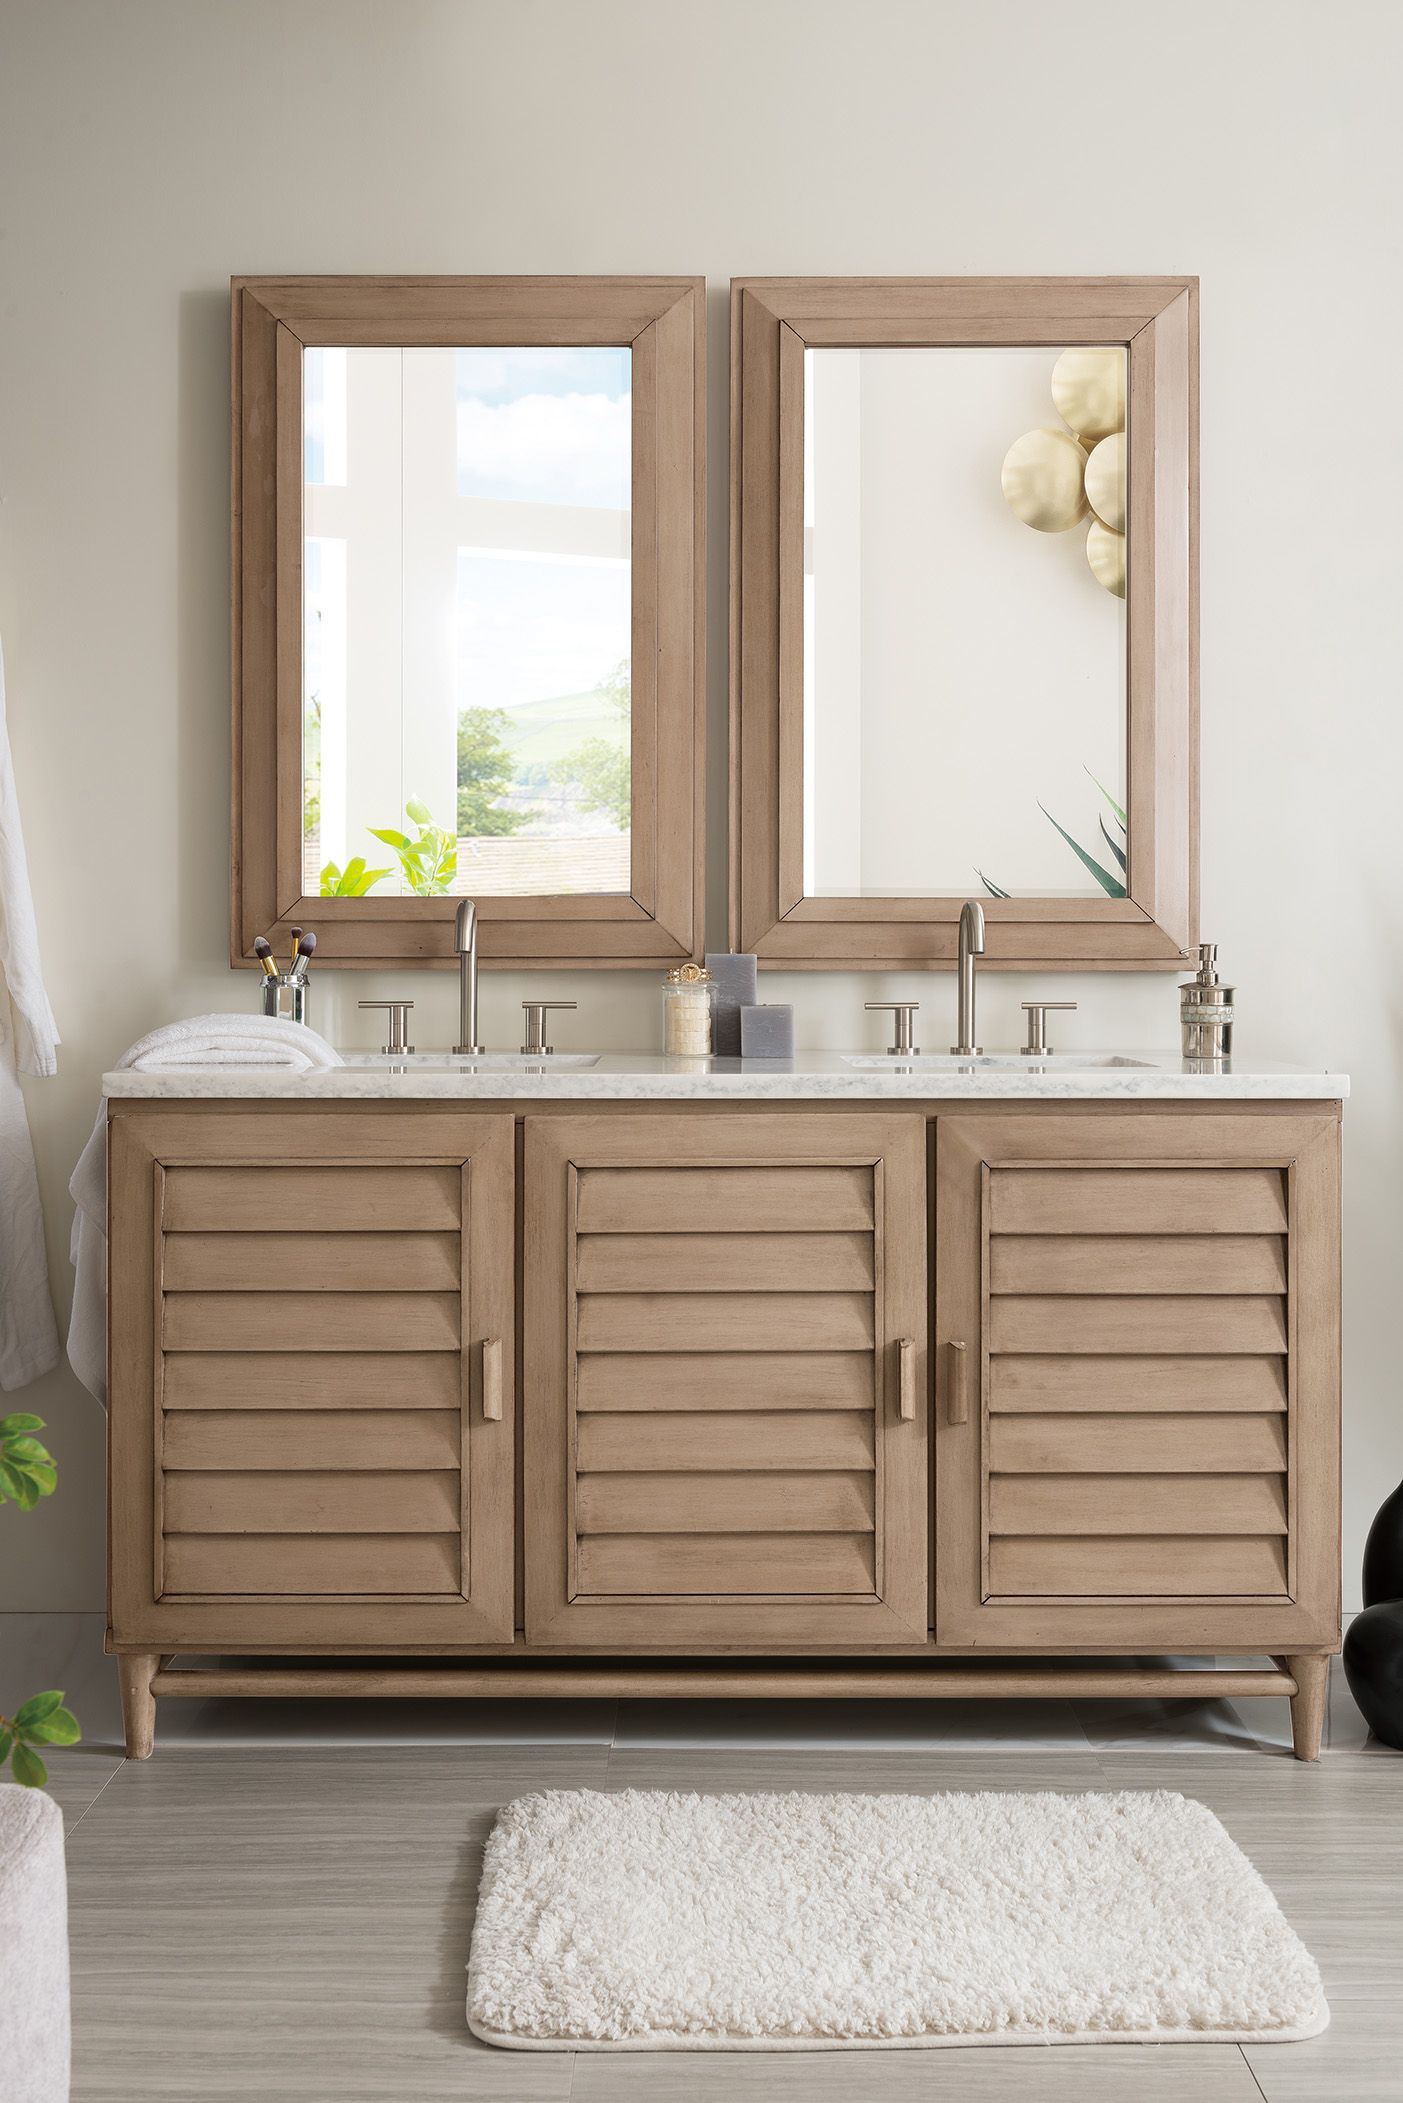 33 In H X 59 75 In W X 23 5 In Dthree Doors Cabinet With One Shelf Amp Amp Four Drawers 60 Inch Double Vanity White Vanity Bathroom Double Vanity Bathroom